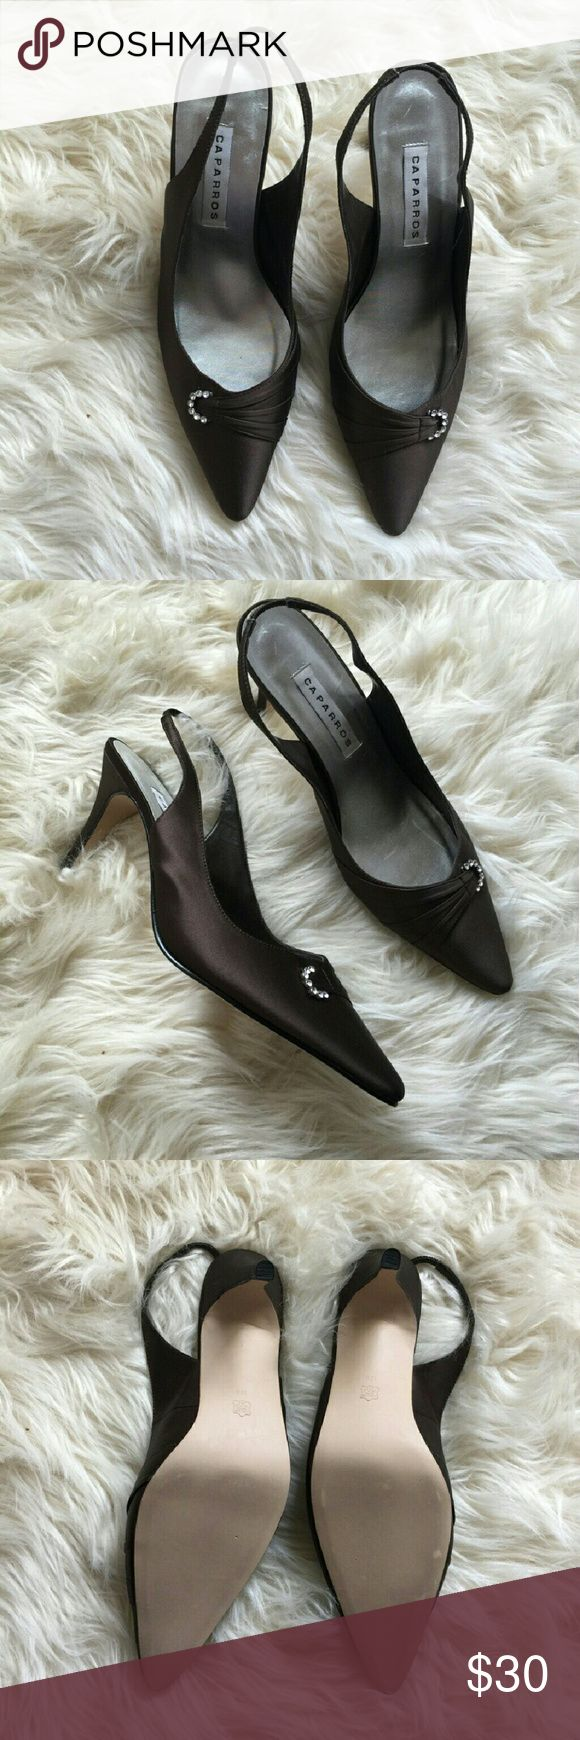 Caparros shoes Brand new, never worn, elegant caparros shoes. Colour is dark saten brown. Caparros Shoes Heels